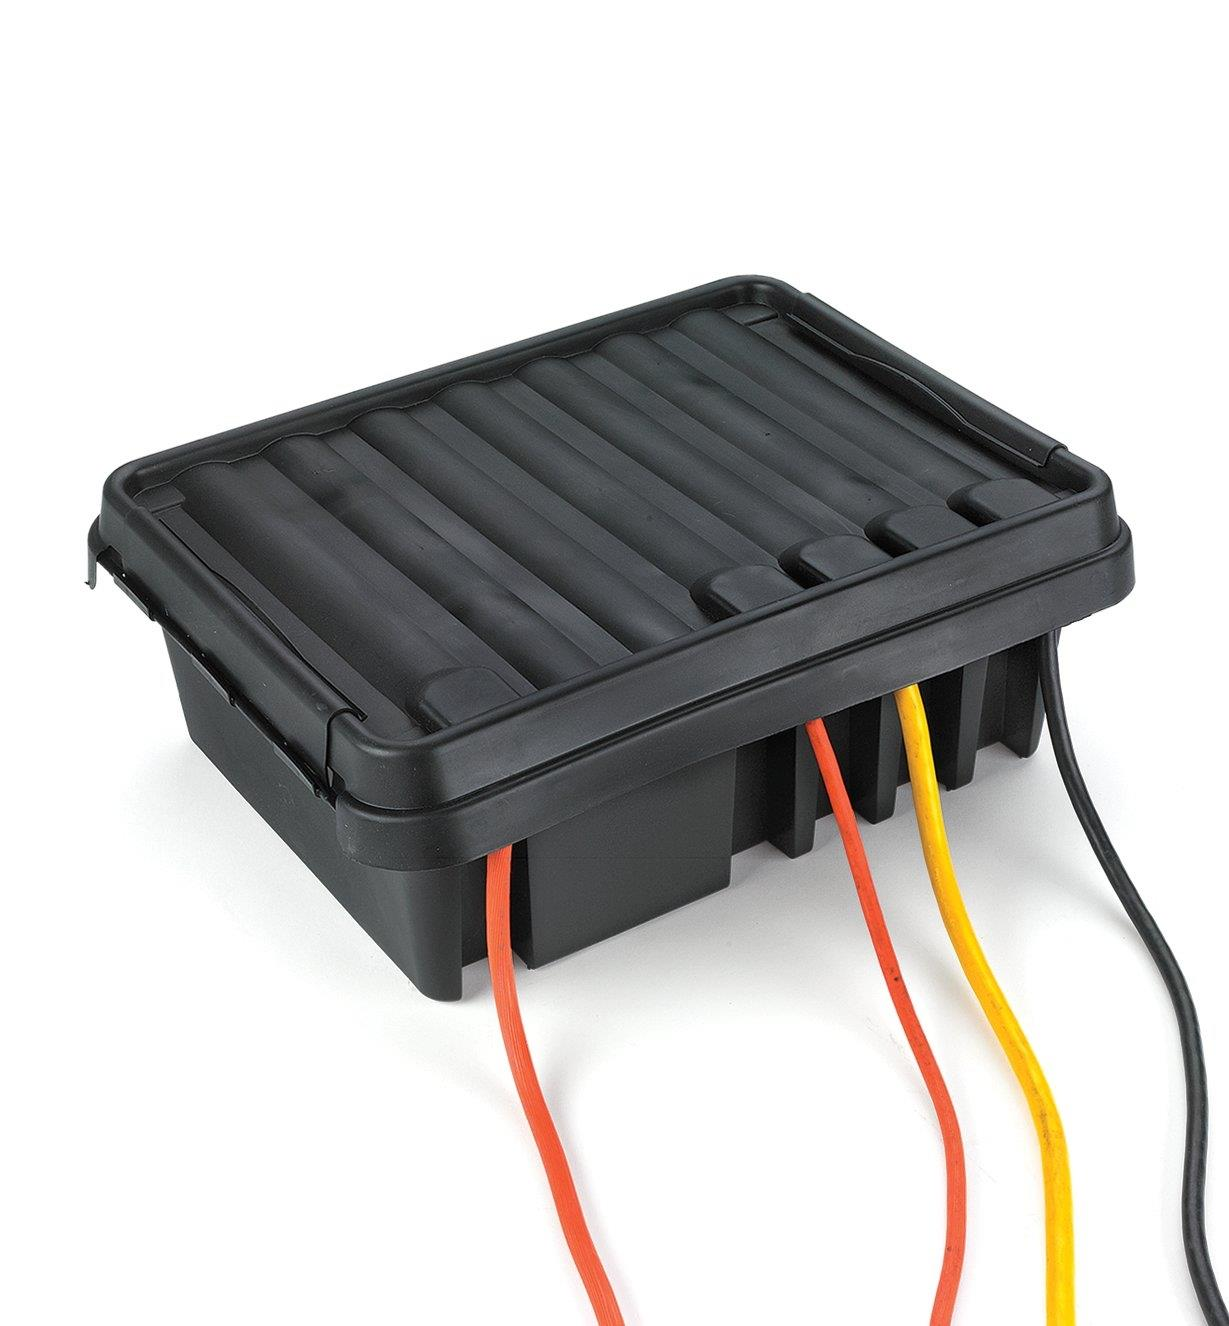 DriBox with the lid closed and power cords emerging through the ports